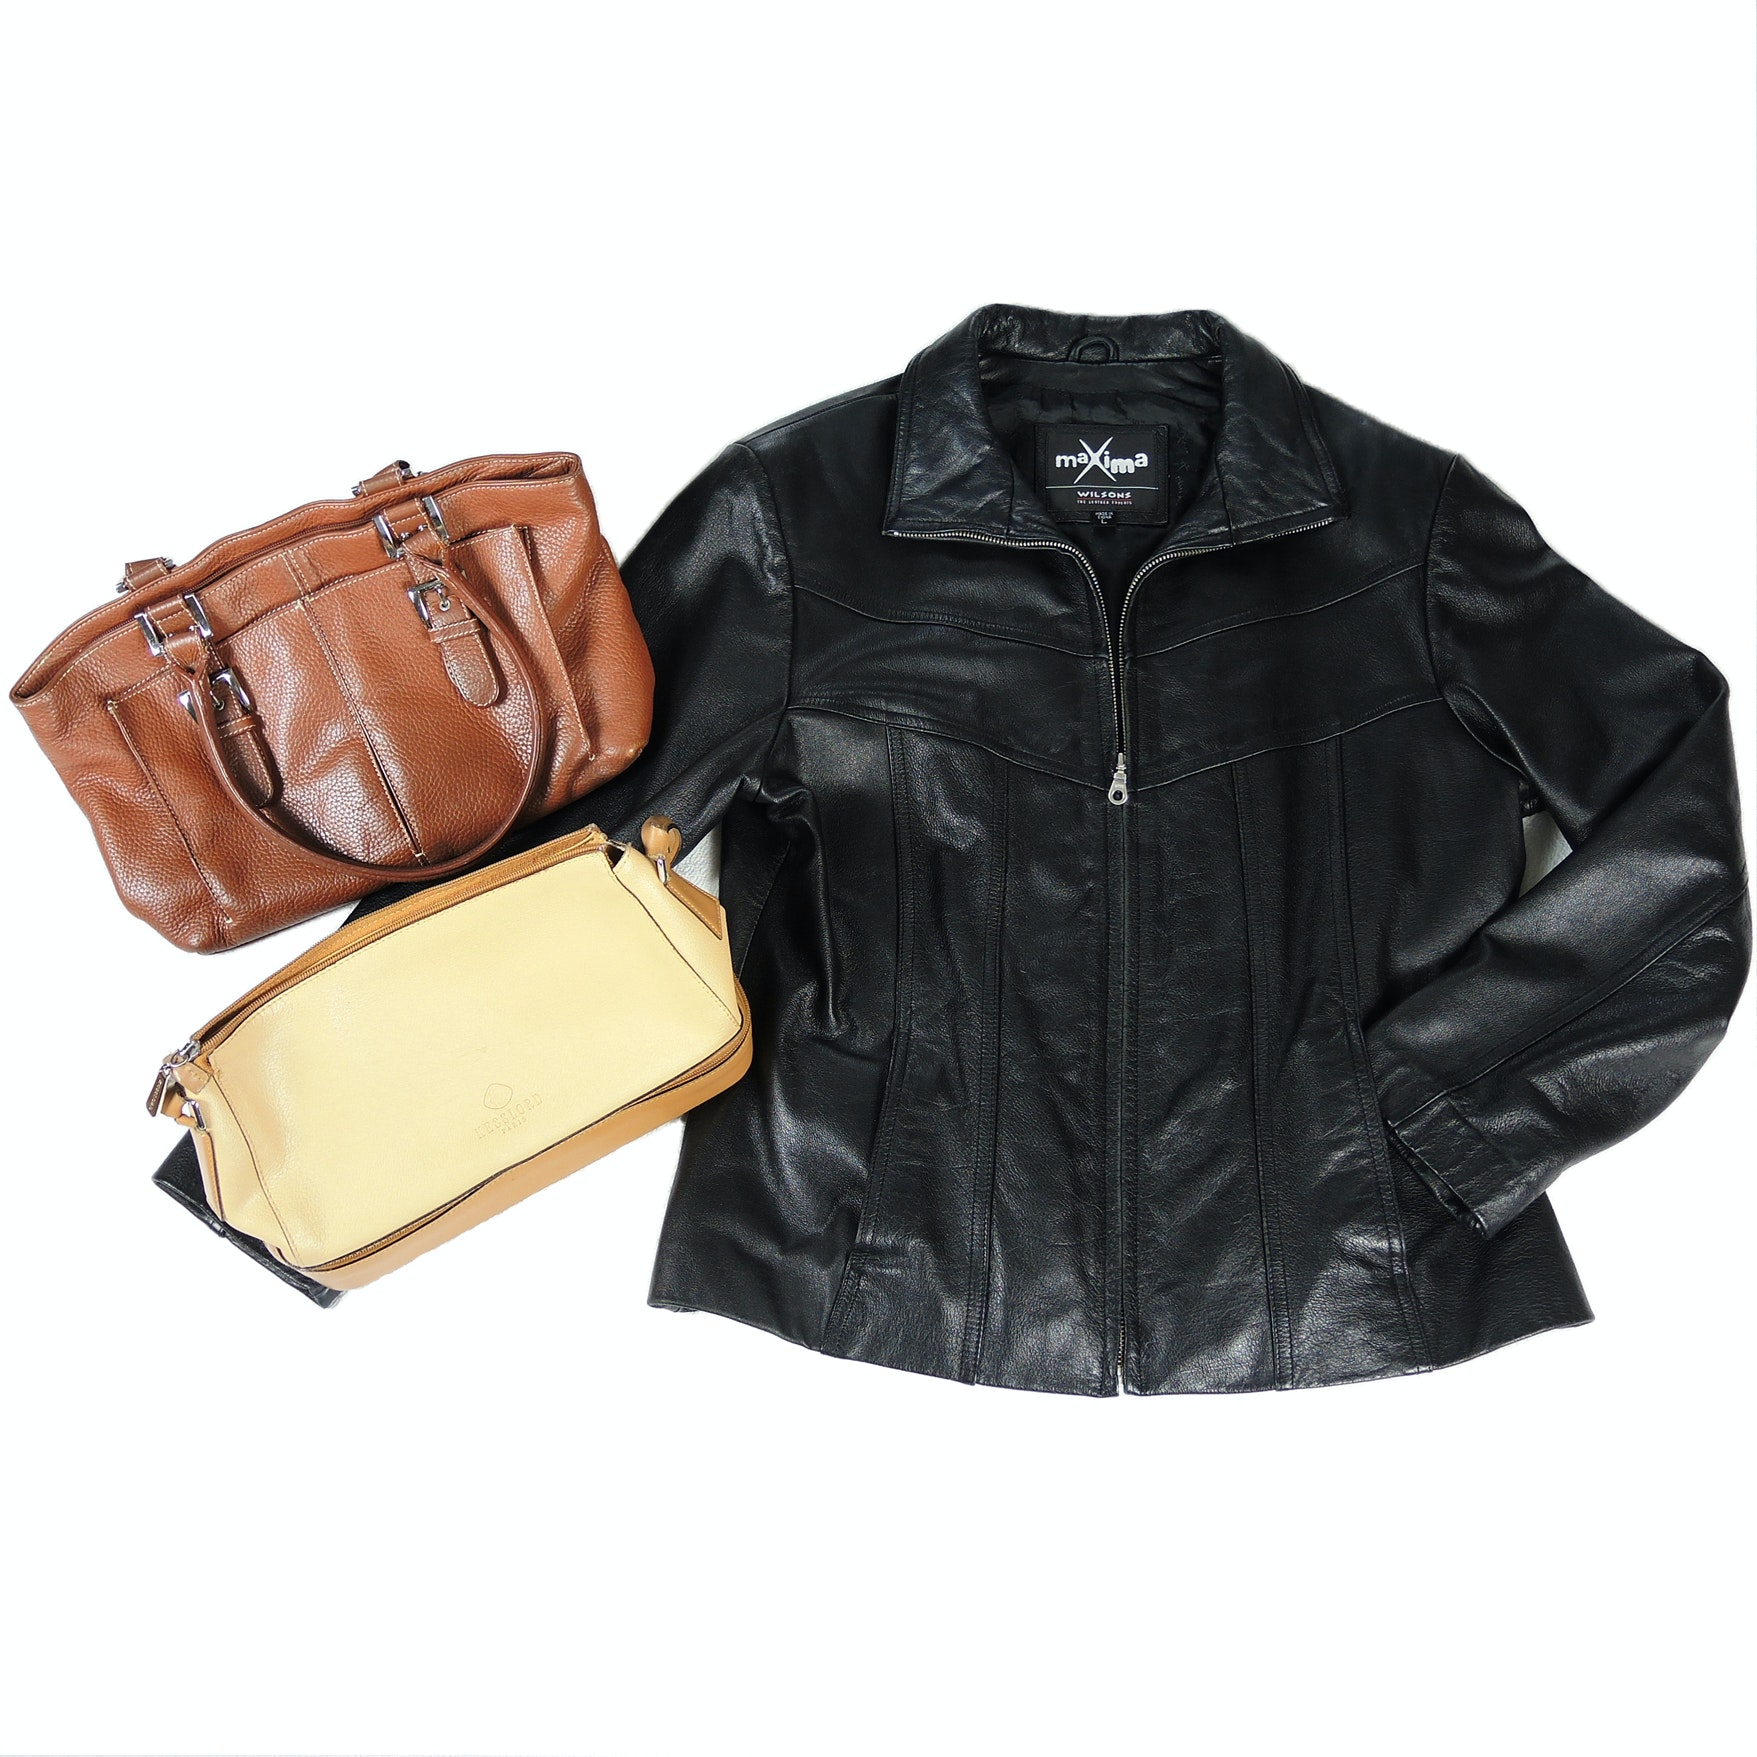 Wilsons Black Leather Jacket with Kesslord Paris and Tignanello Leather Handbags